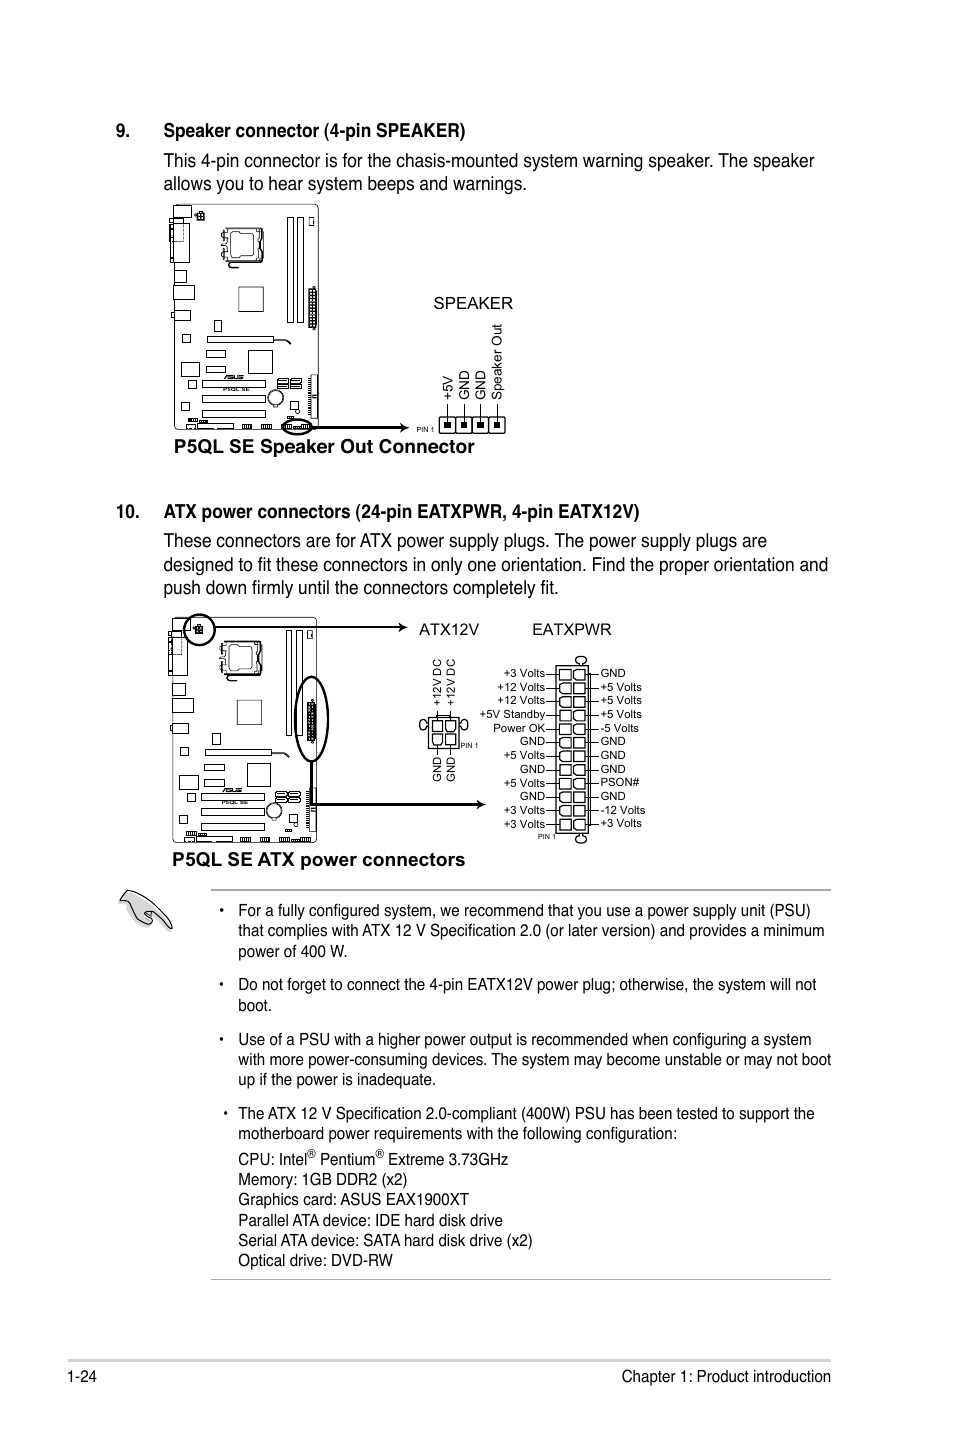 P5ql Se Atx Power Connectors Asus User Manual Page 34 60 Supply Pin Out Connector